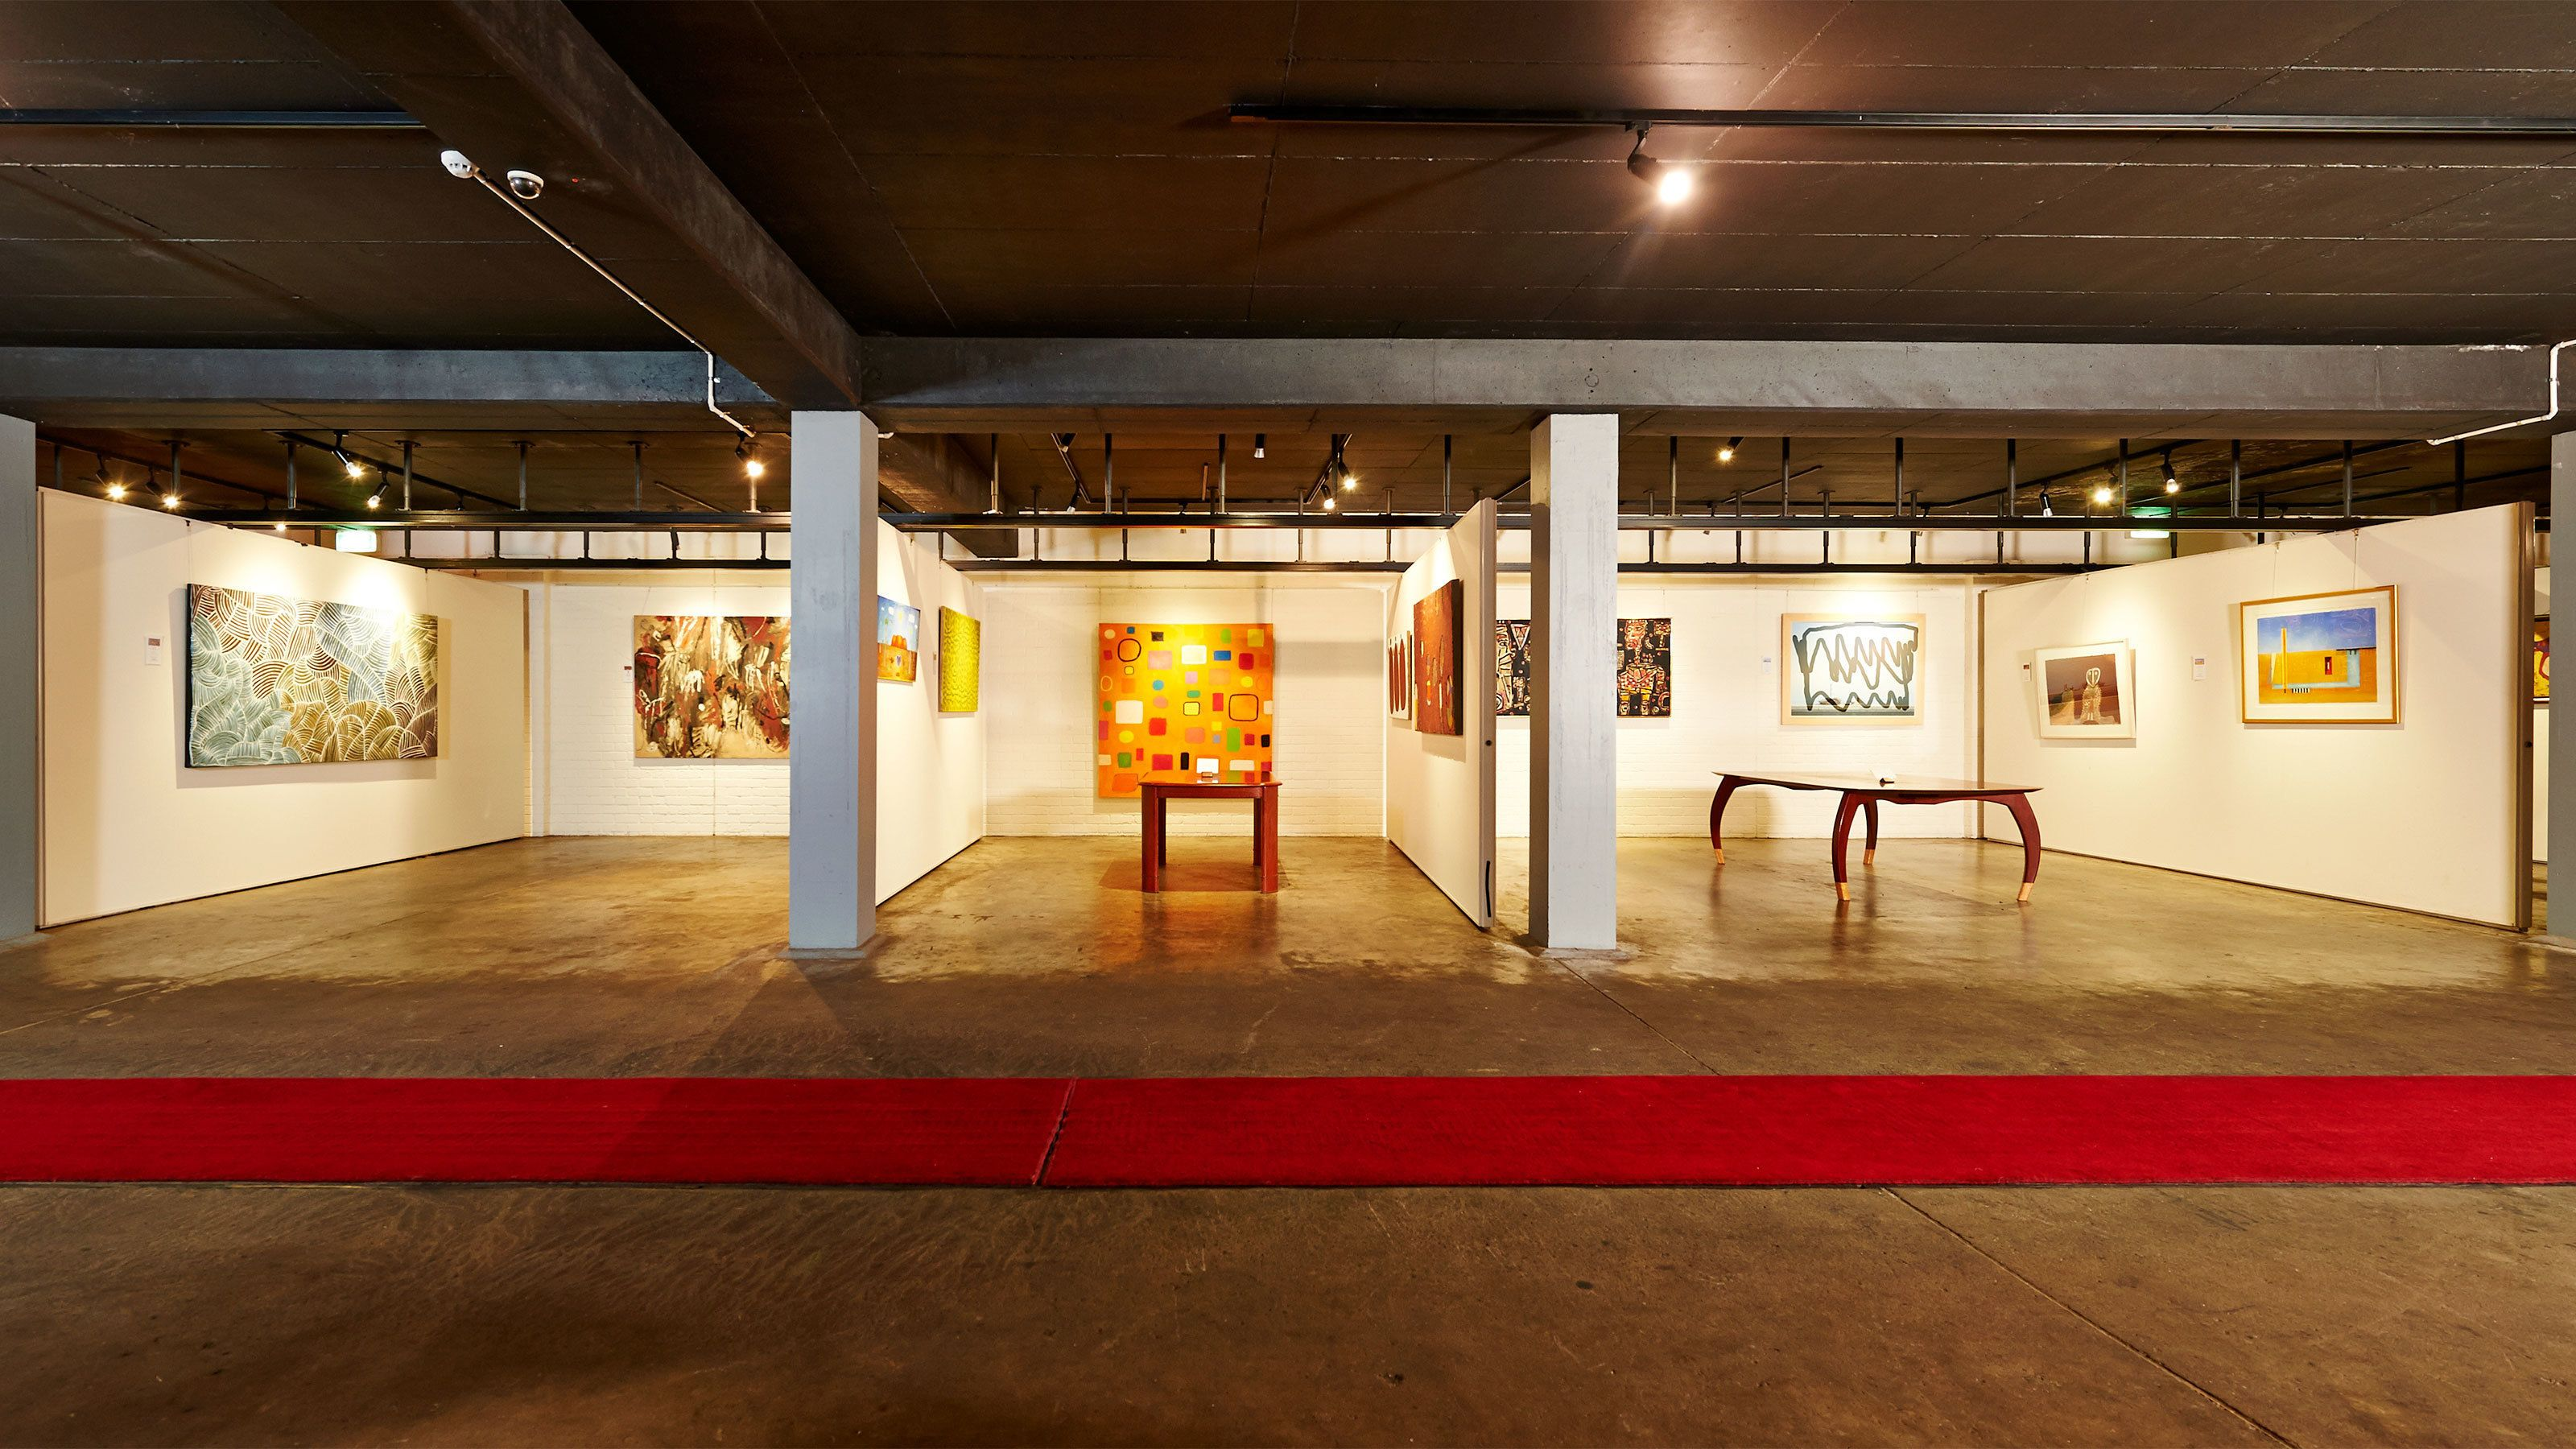 Wide view of lit up art gallery with smooth concrete flooring.